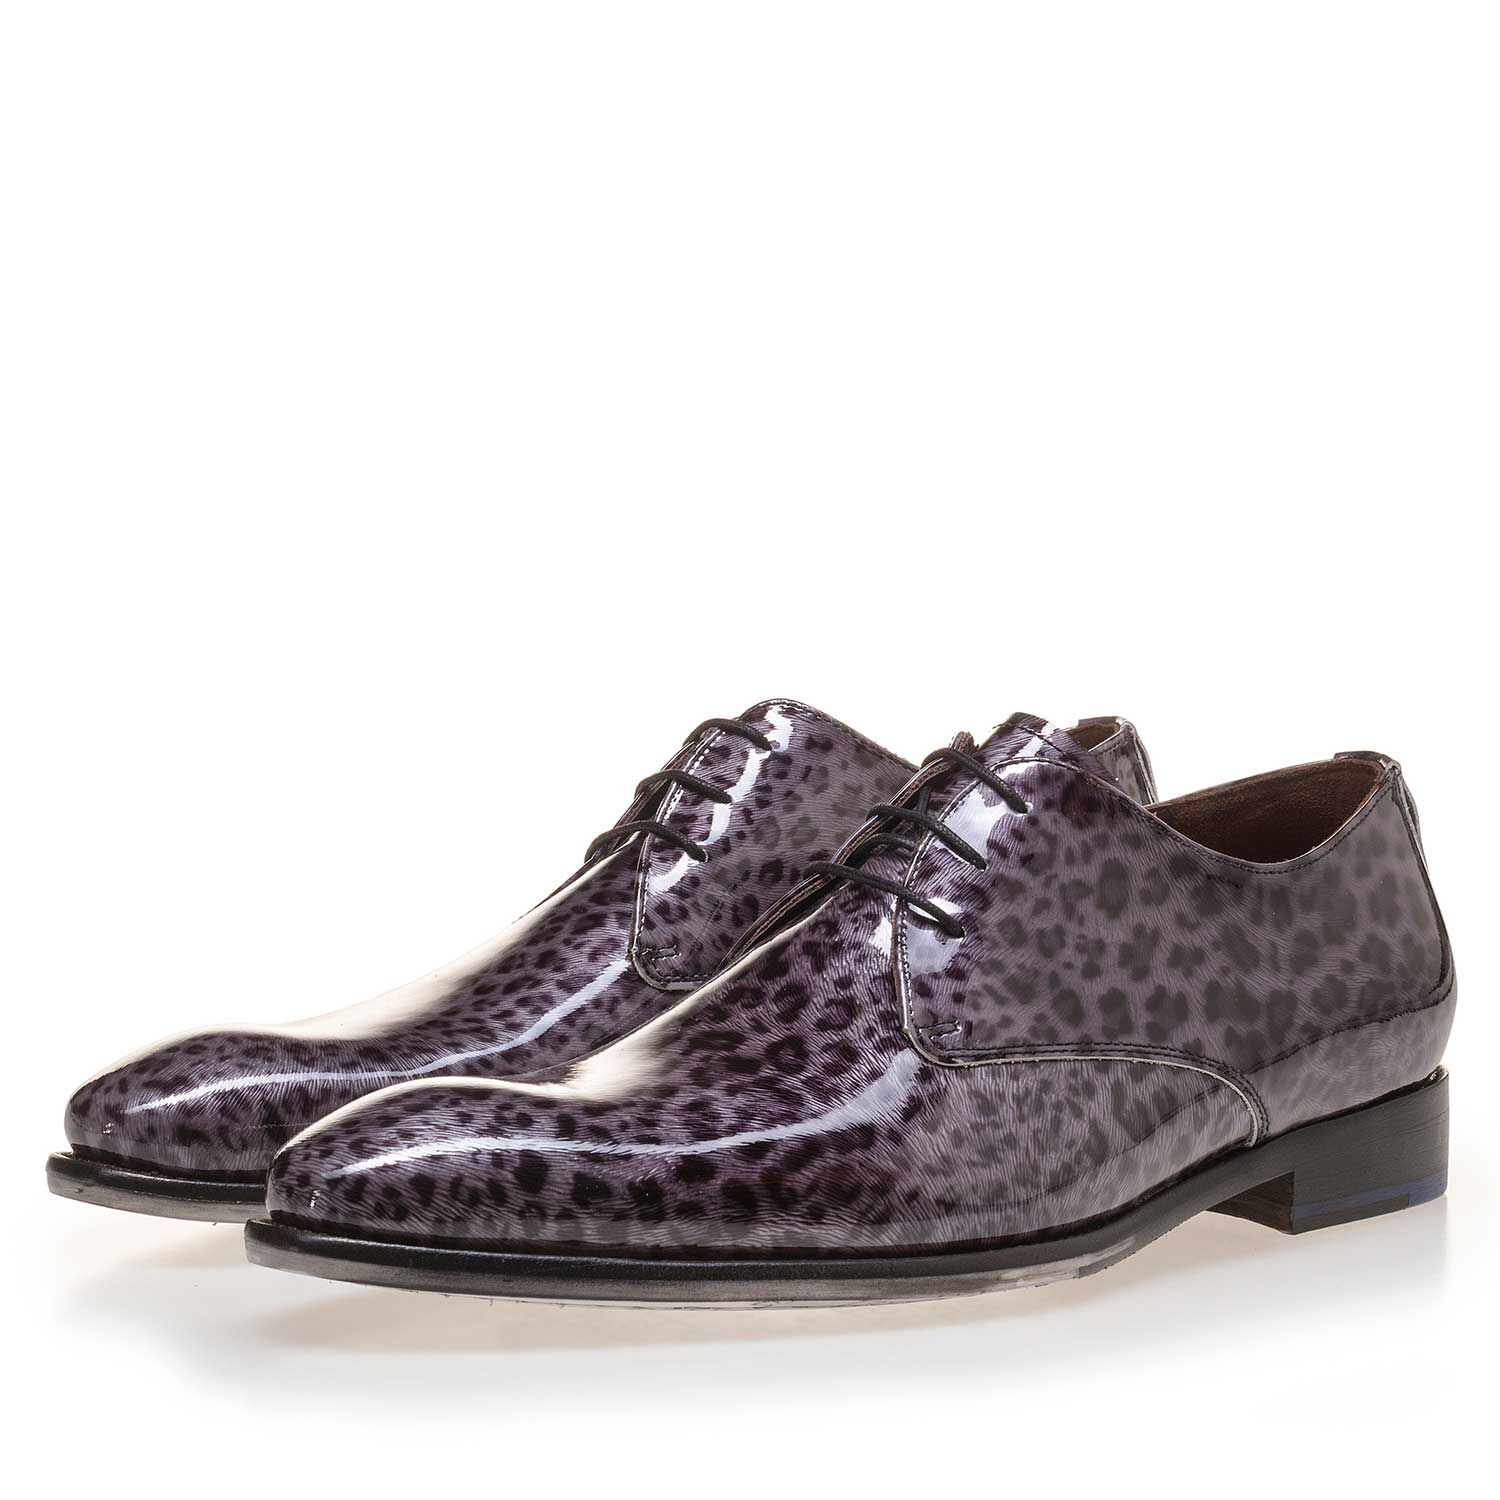 floris van bommel shoes